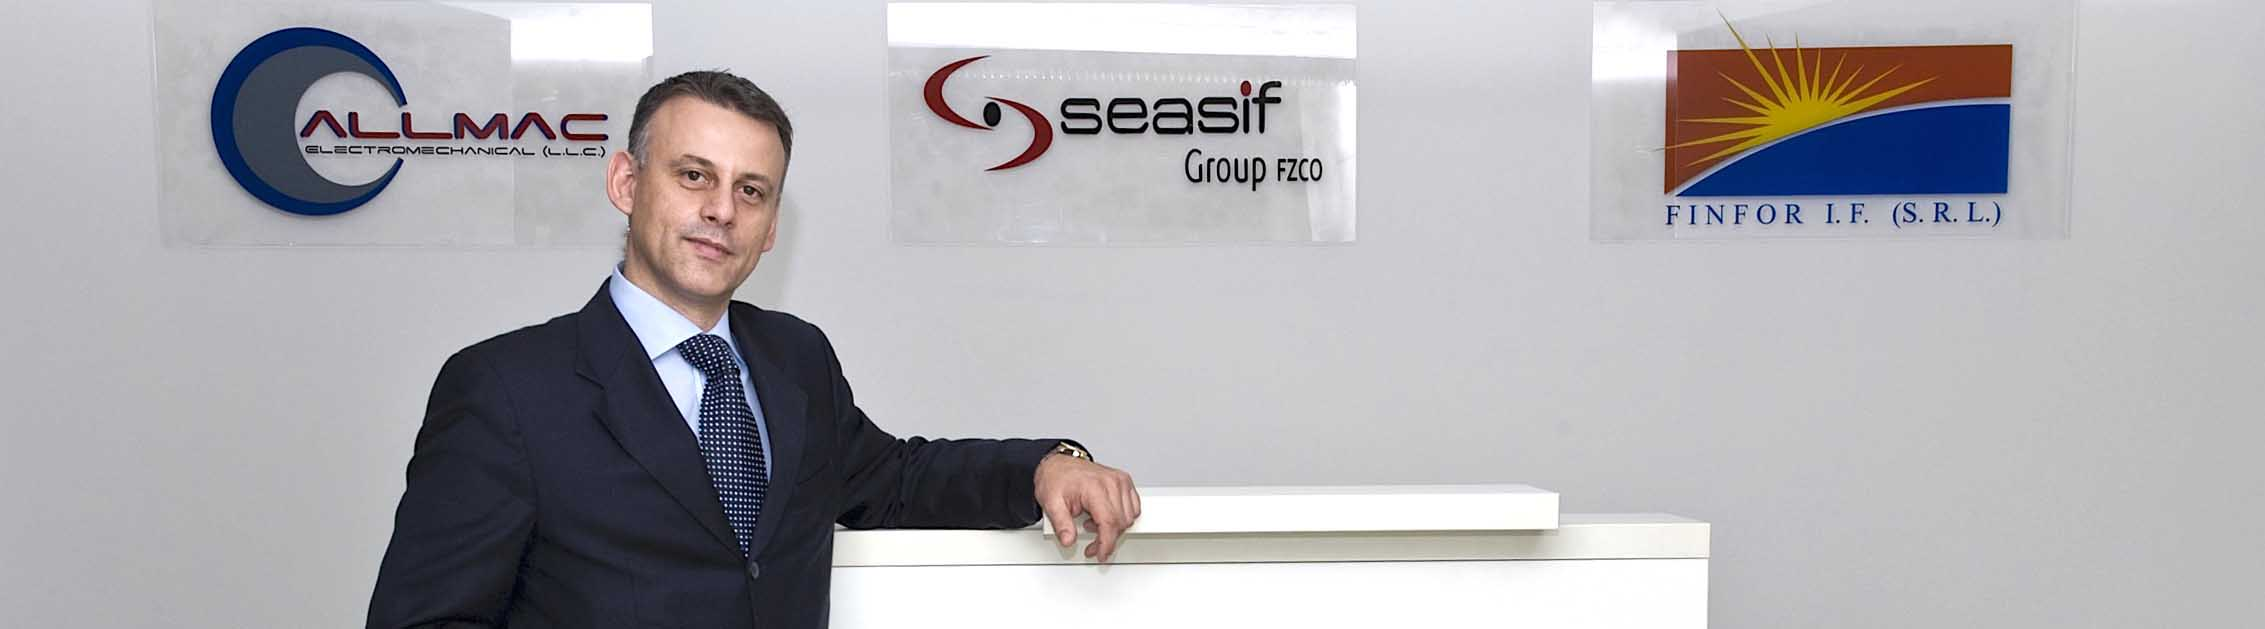 Franco Favilla - Chairman & CEO, Seasif Holding